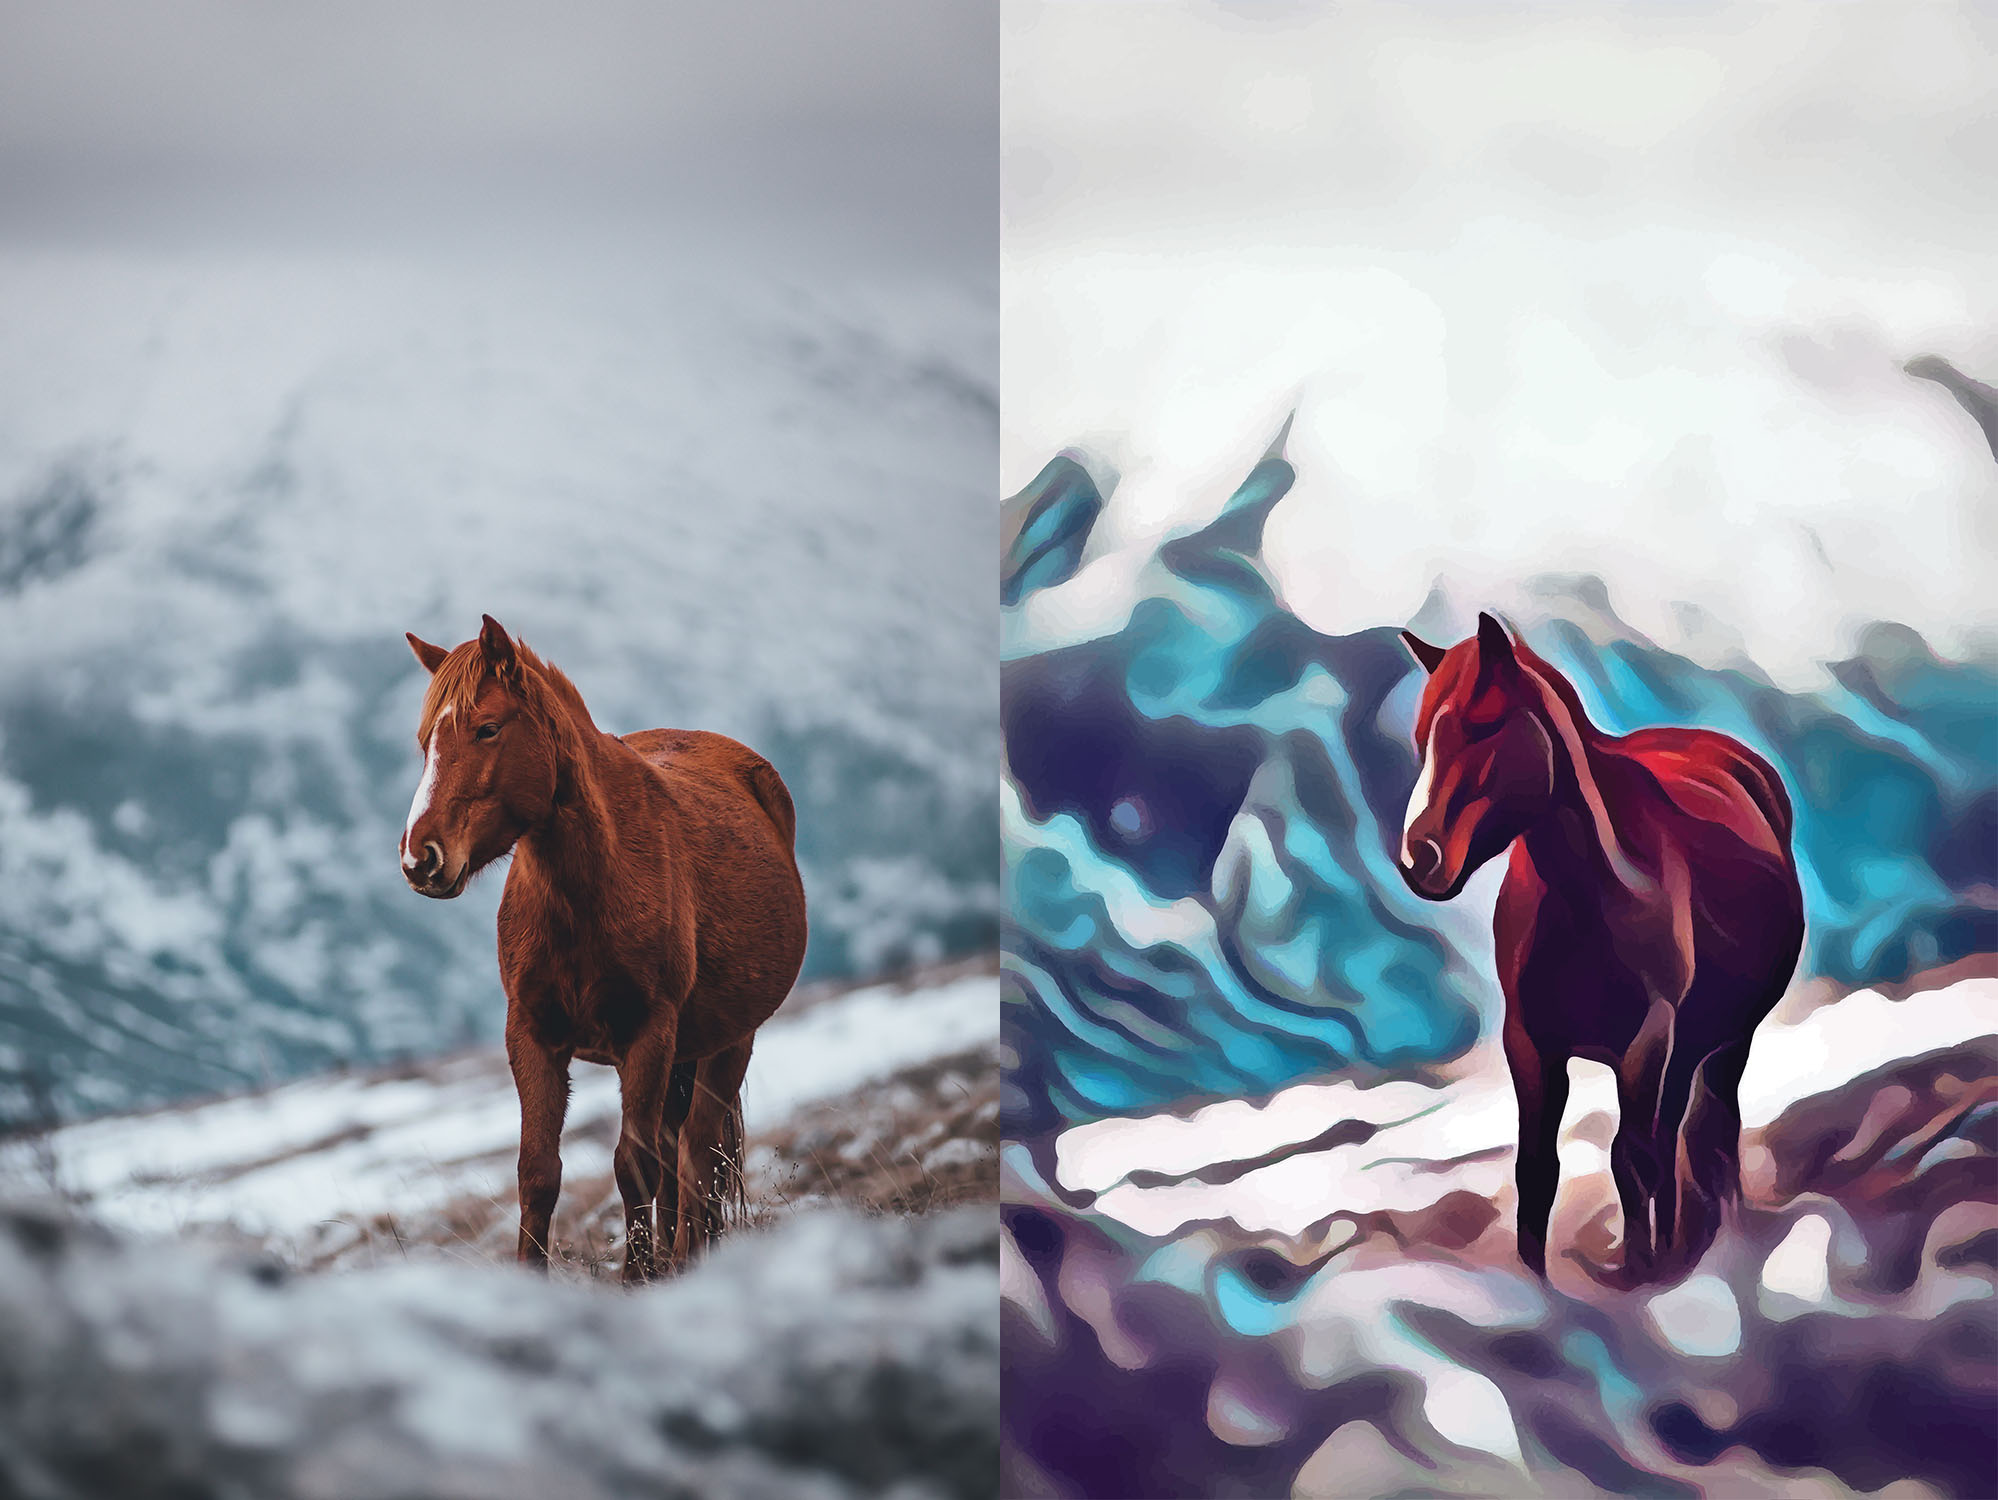 Before and after stylized image of a lone horse walking on a snowy mountain